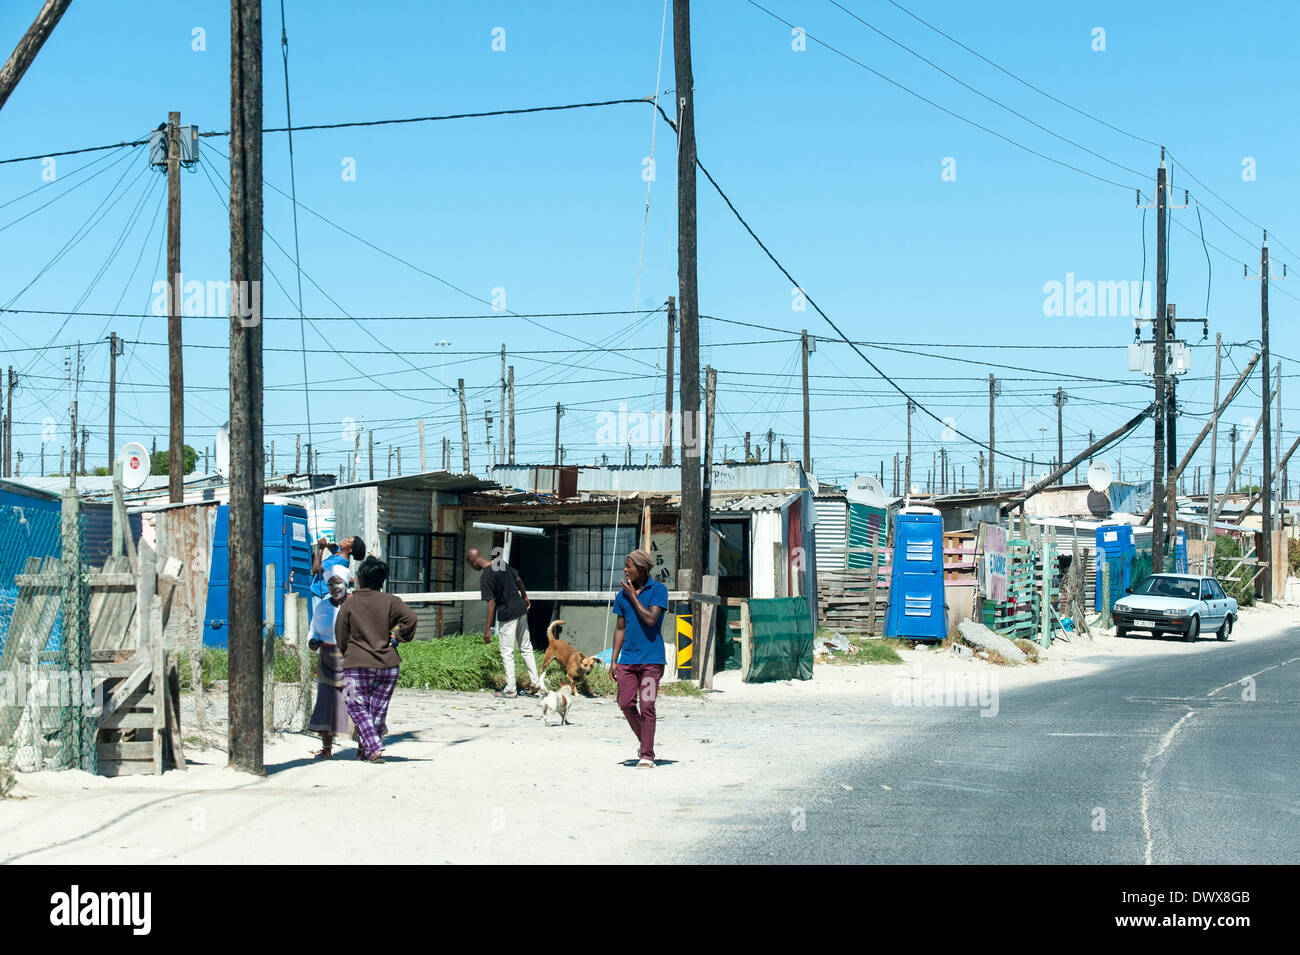 Road with makeshift houses and people in Khayelitsha, Cape Town, Western Cape, South Africa - Stock Image